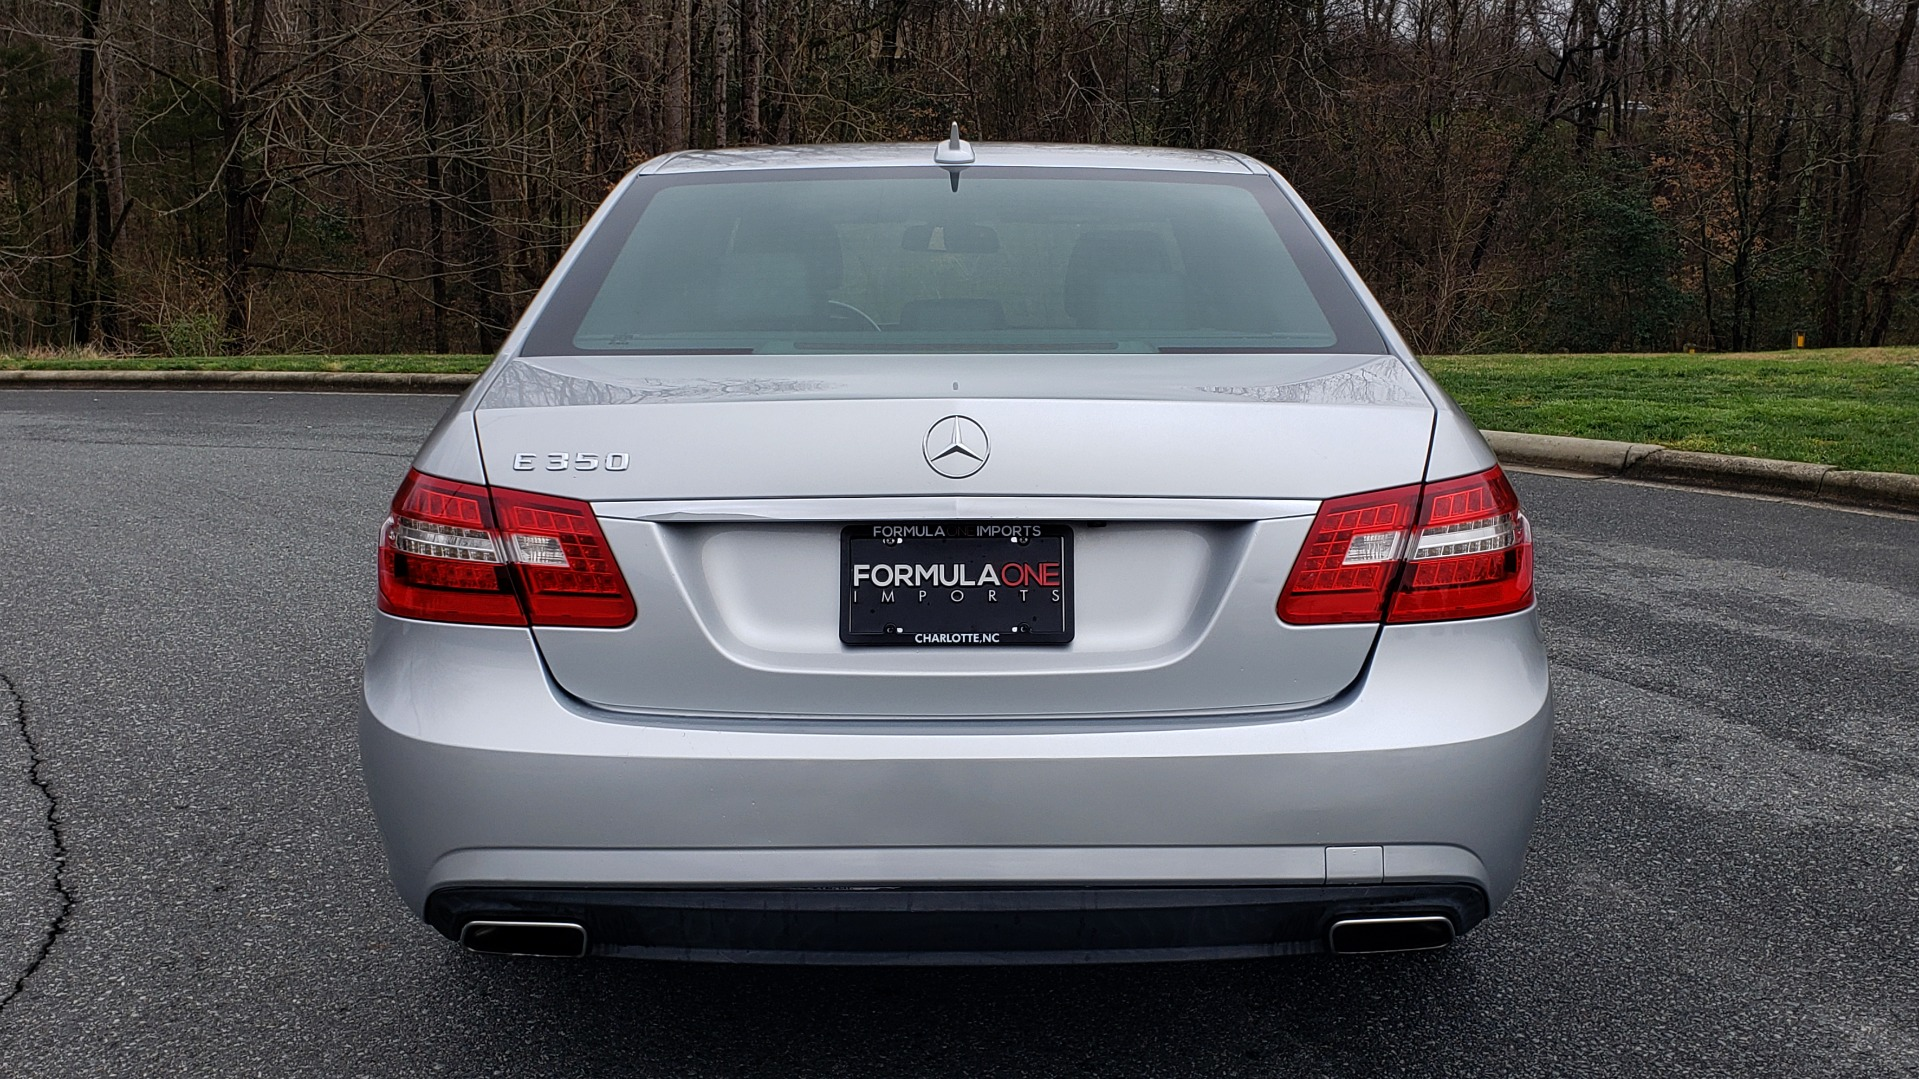 Used 2011 Mercedes-Benz E-CLASS E 350 PREMIUM / SUNROOF / NAV / HTD STS / REARVIEW for sale Sold at Formula Imports in Charlotte NC 28227 30